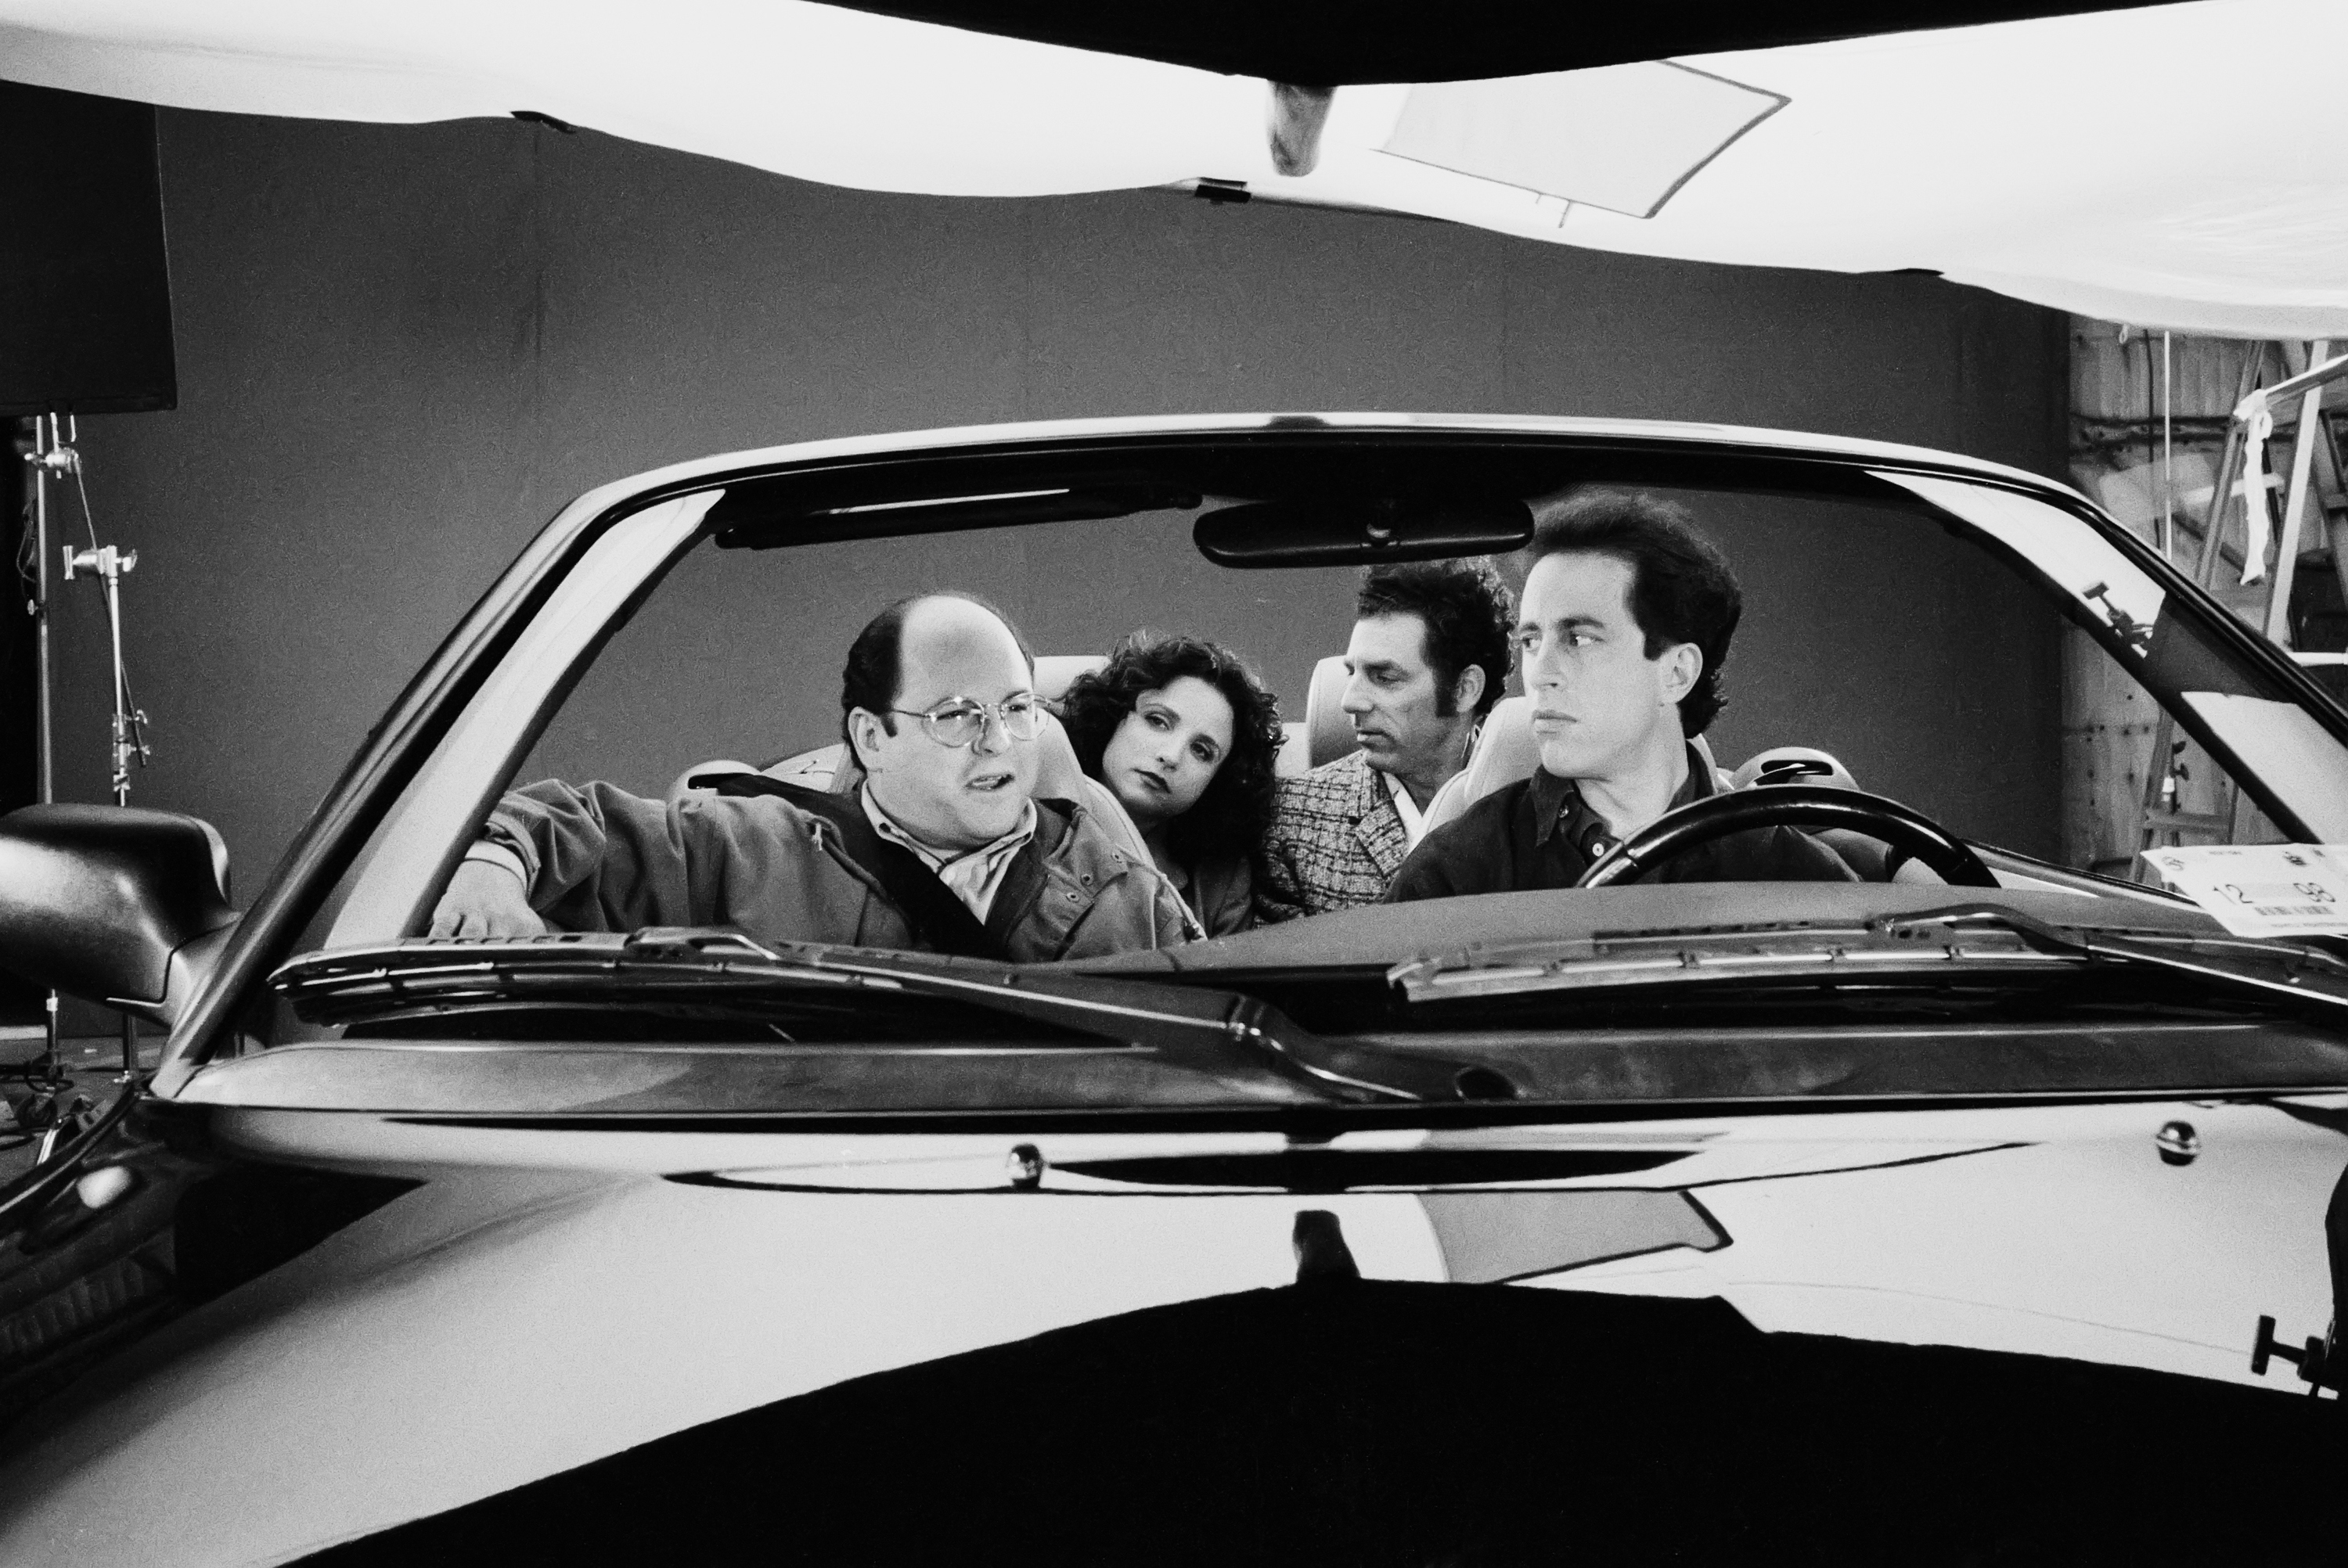 Scene from Jerry Seinfeld's show 'Seinfeld'